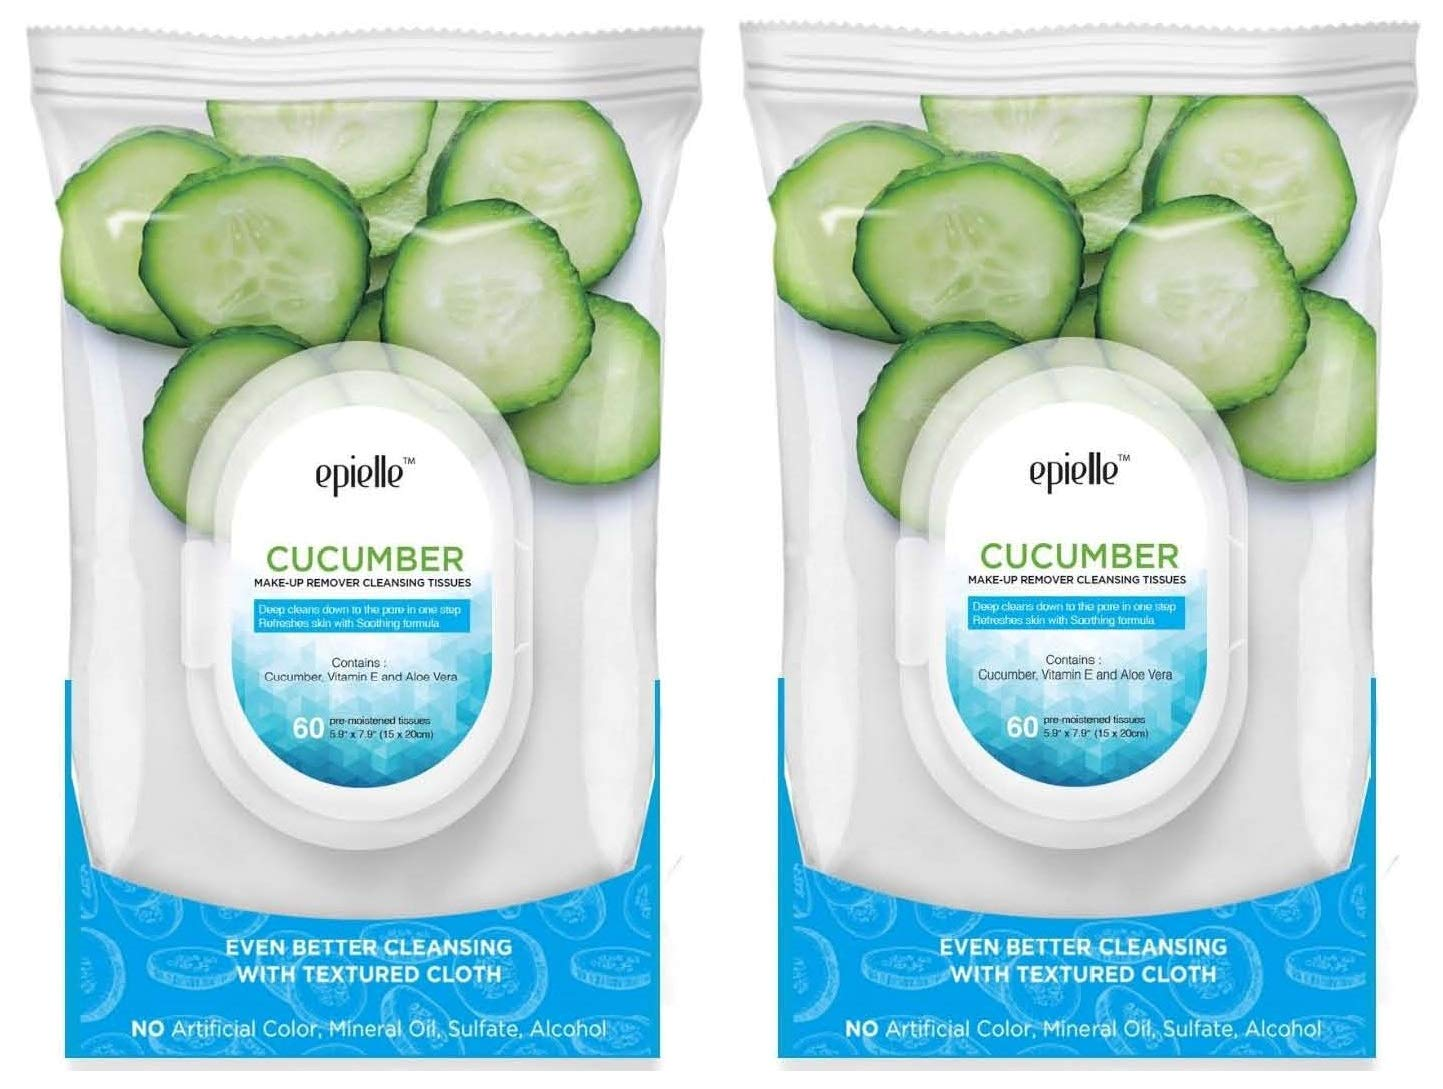 Epielle New Cucumber Facial Cleansing Facial Tissues Wipes Towelettes - 60ct (Sheets) per pack, Twin Pack (Total 2 packs)